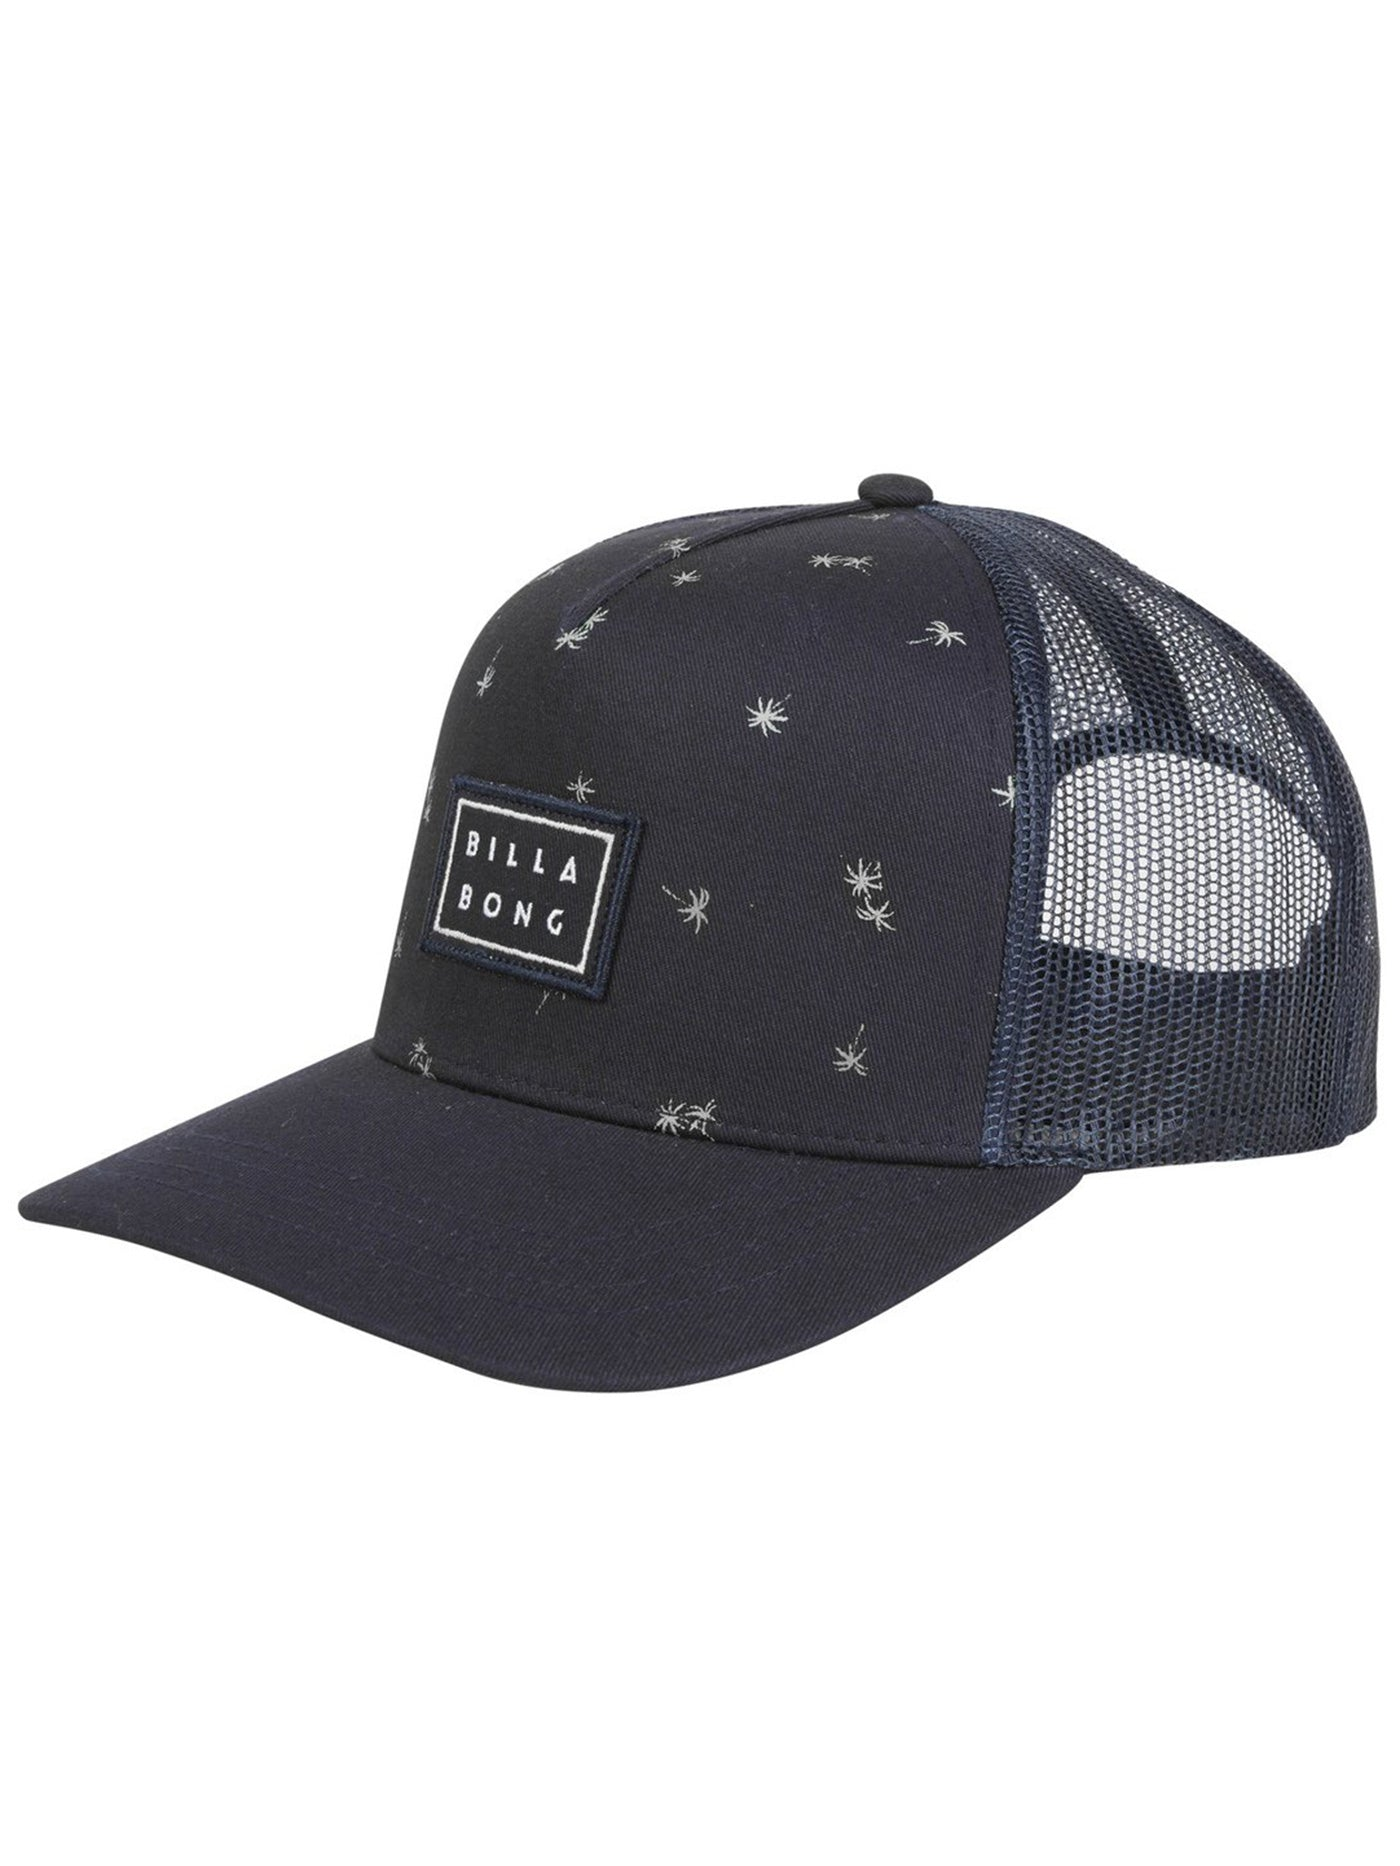 DARK NAVY (DKN)